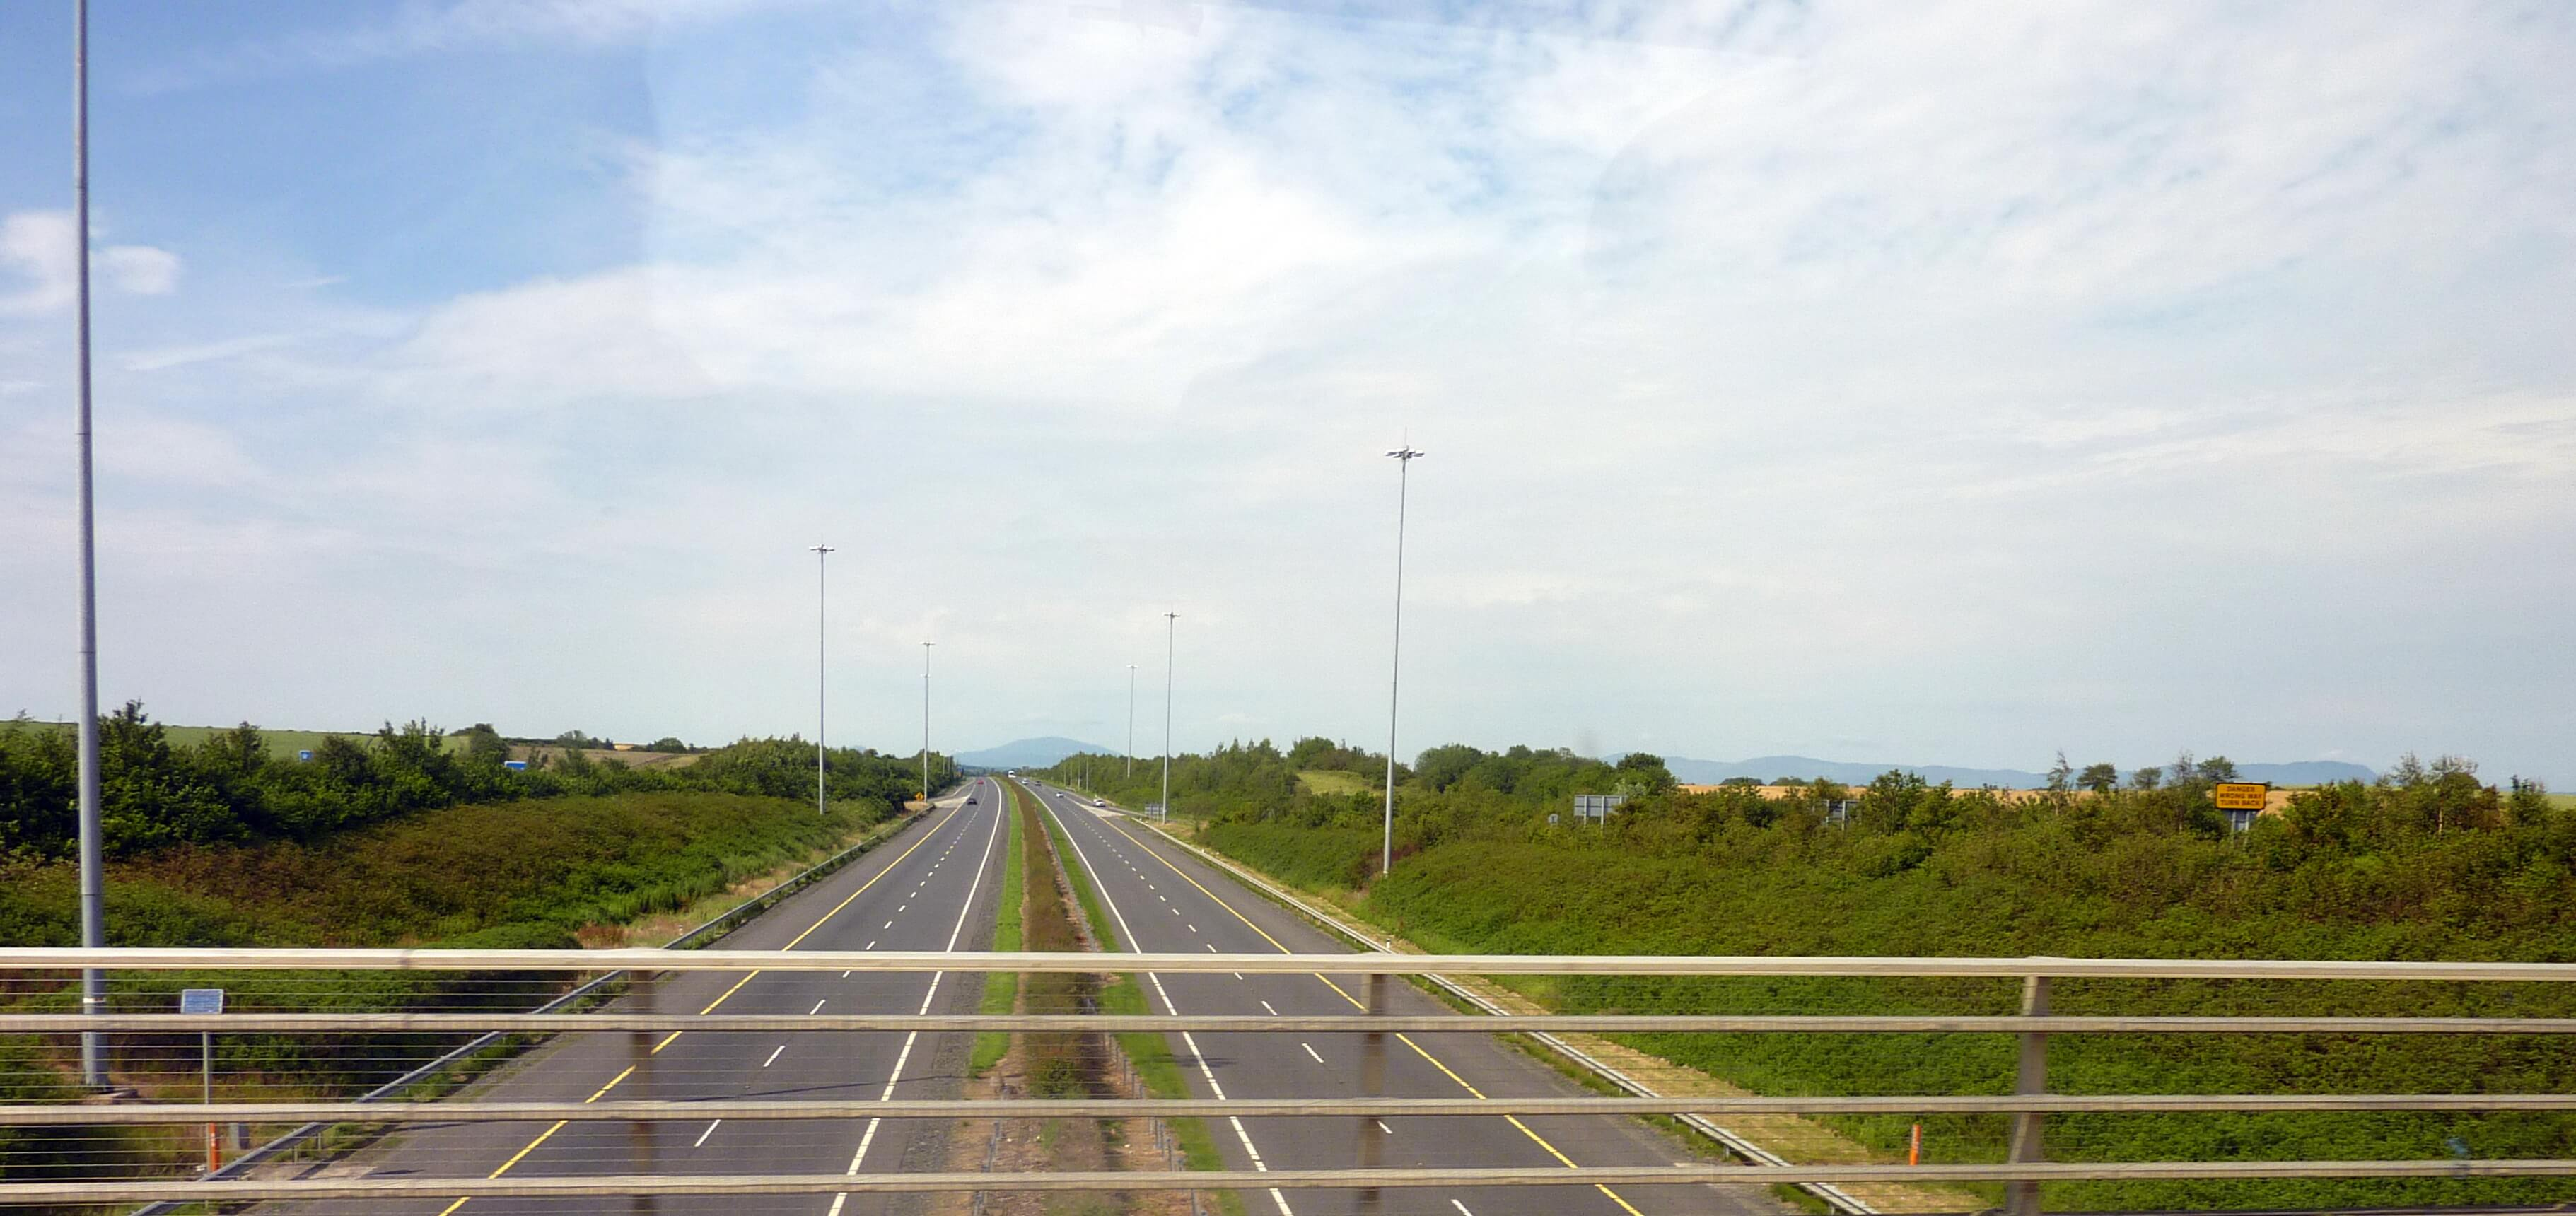 Motorways, A Roads and Carriageways-Everything You Need to Know